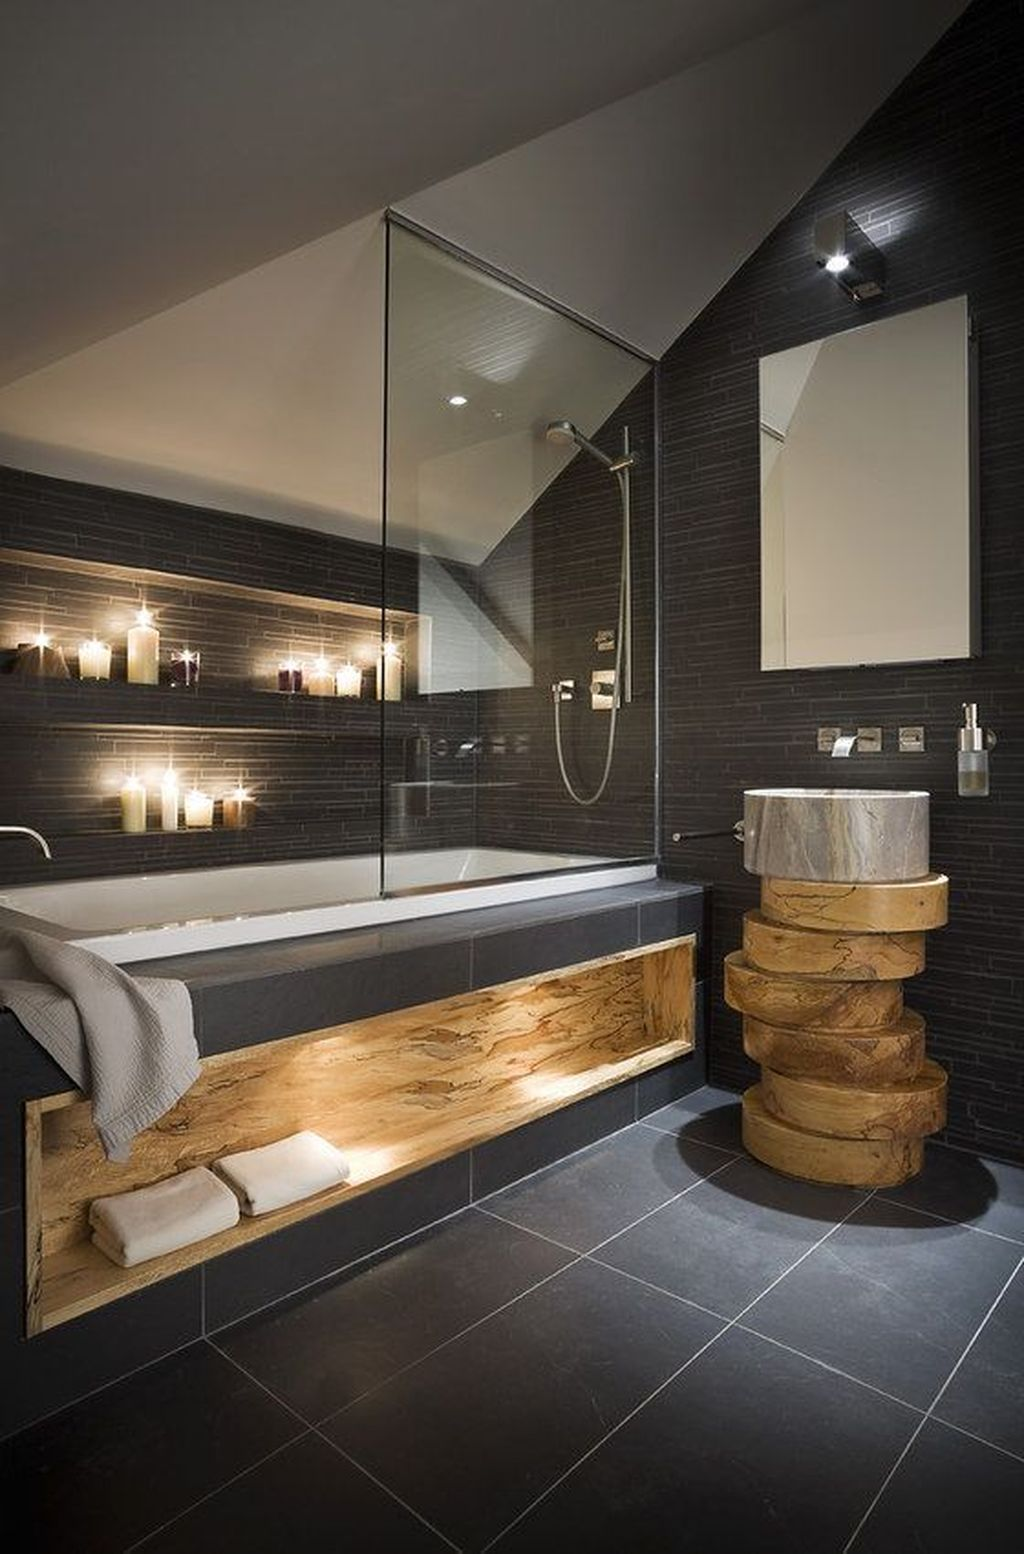 Inspiring Unique Bathroom Ideas That You Should Try 13